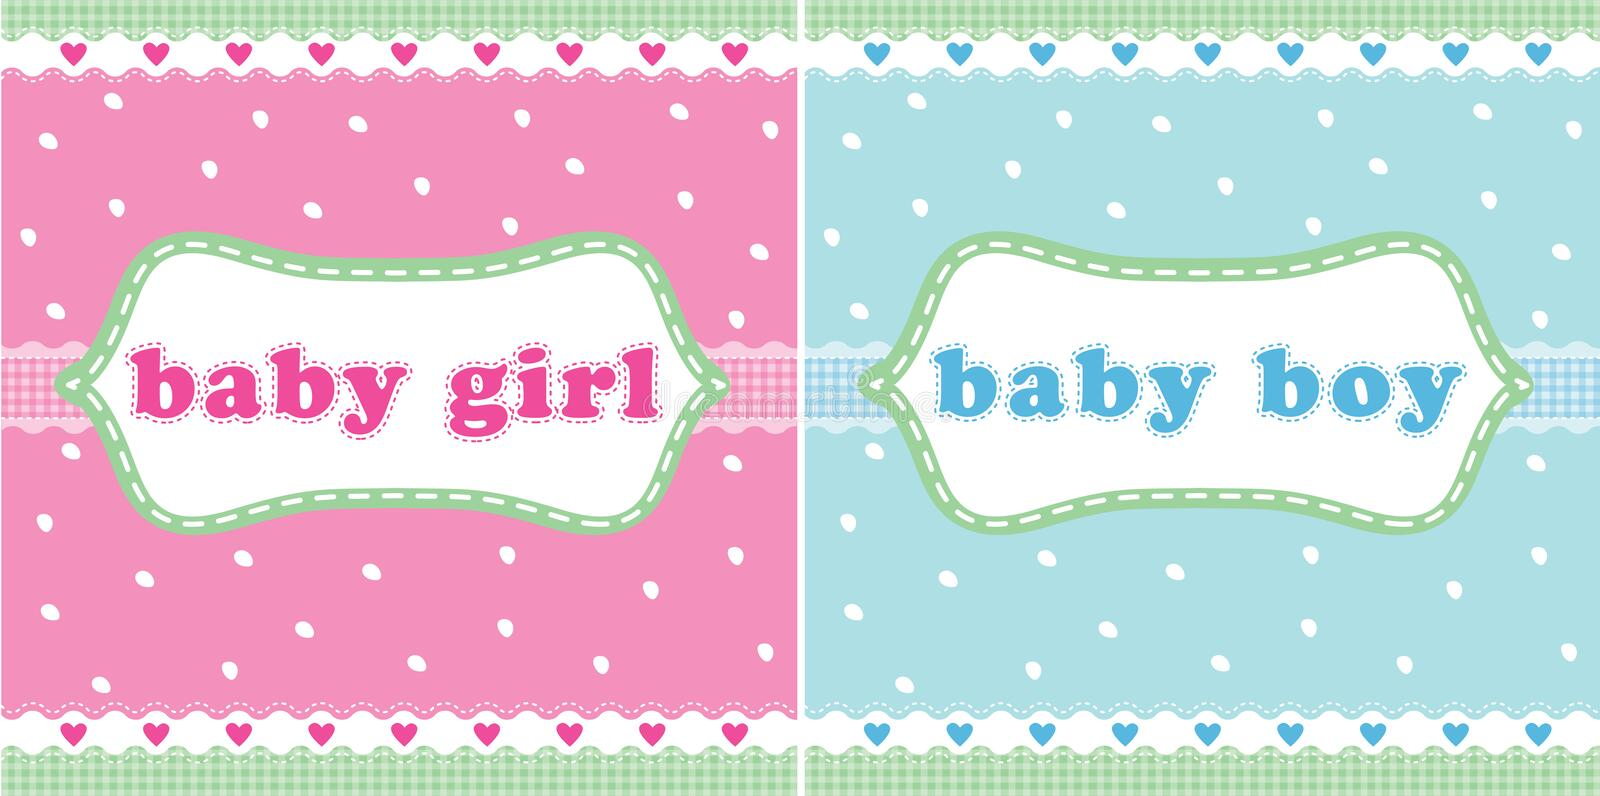 Baby girl and baby boy card royalty free illustration